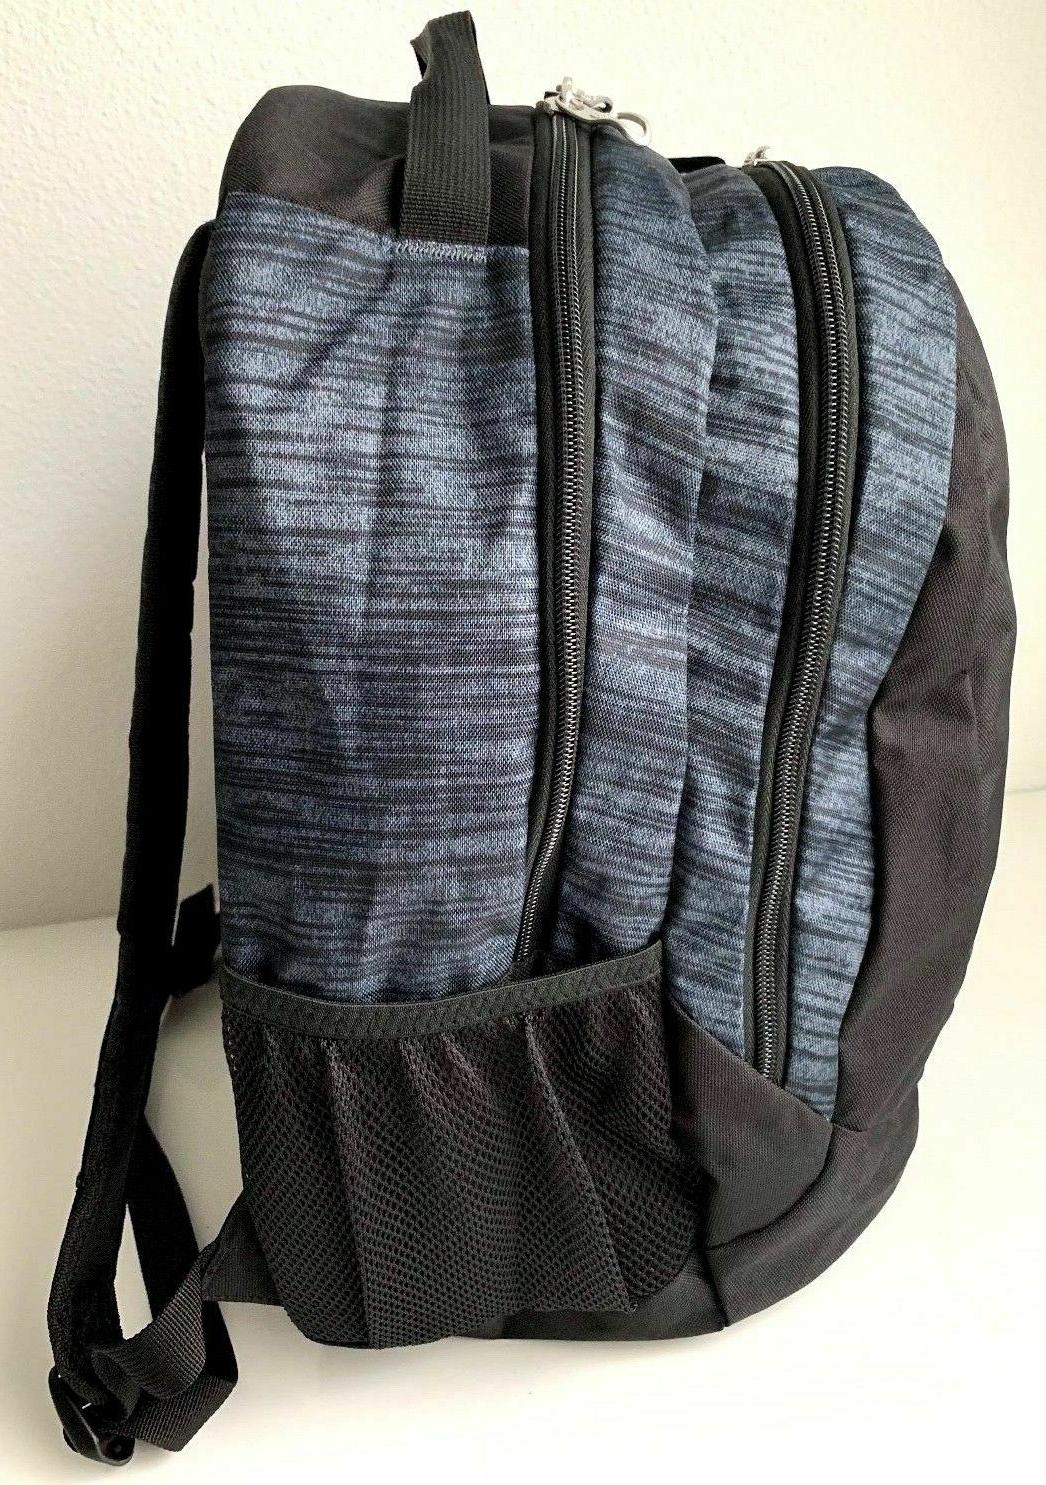 ADIDAS JOURNAL CAPACITY DELUXE BAG